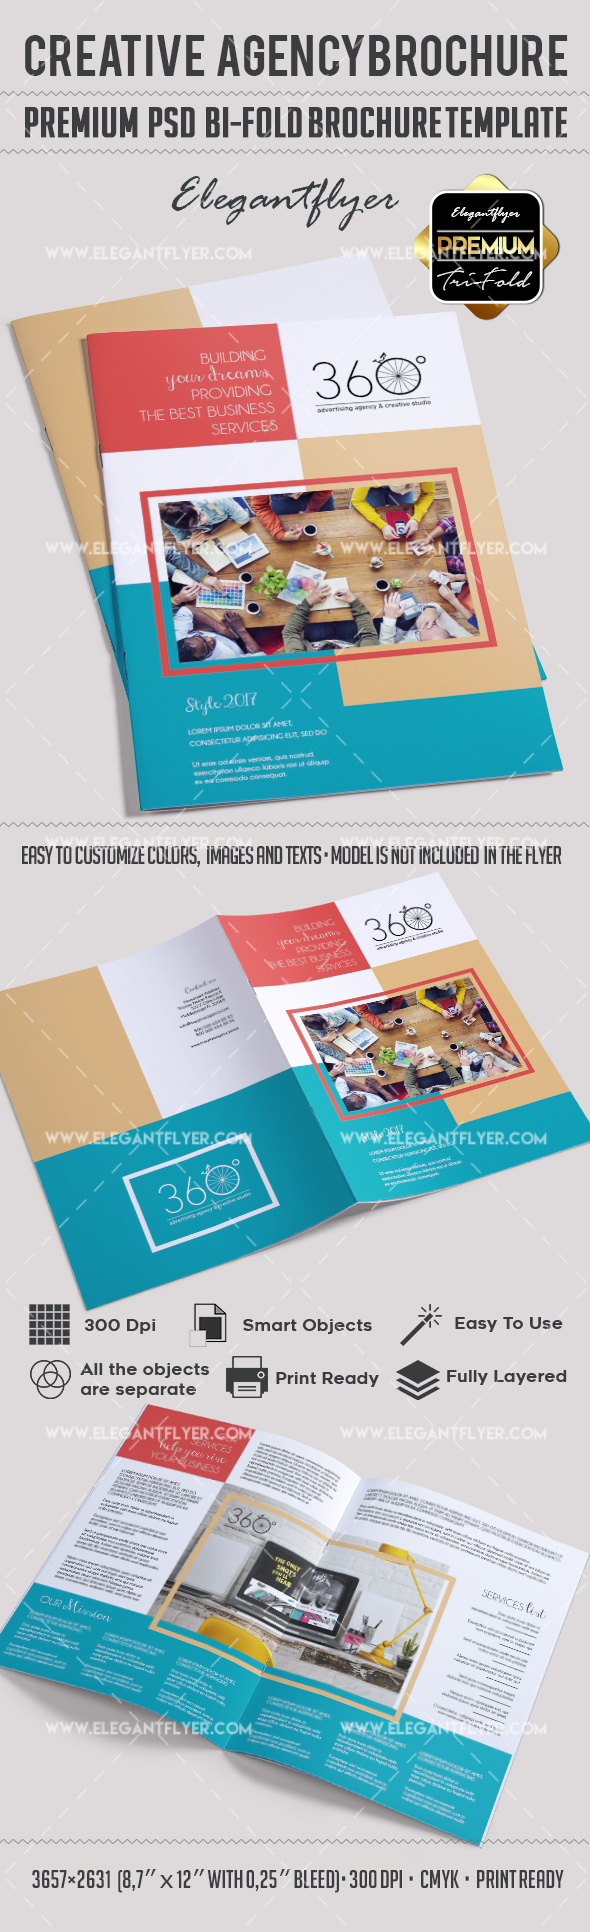 Bi-Fold Brochure for Creative Agency